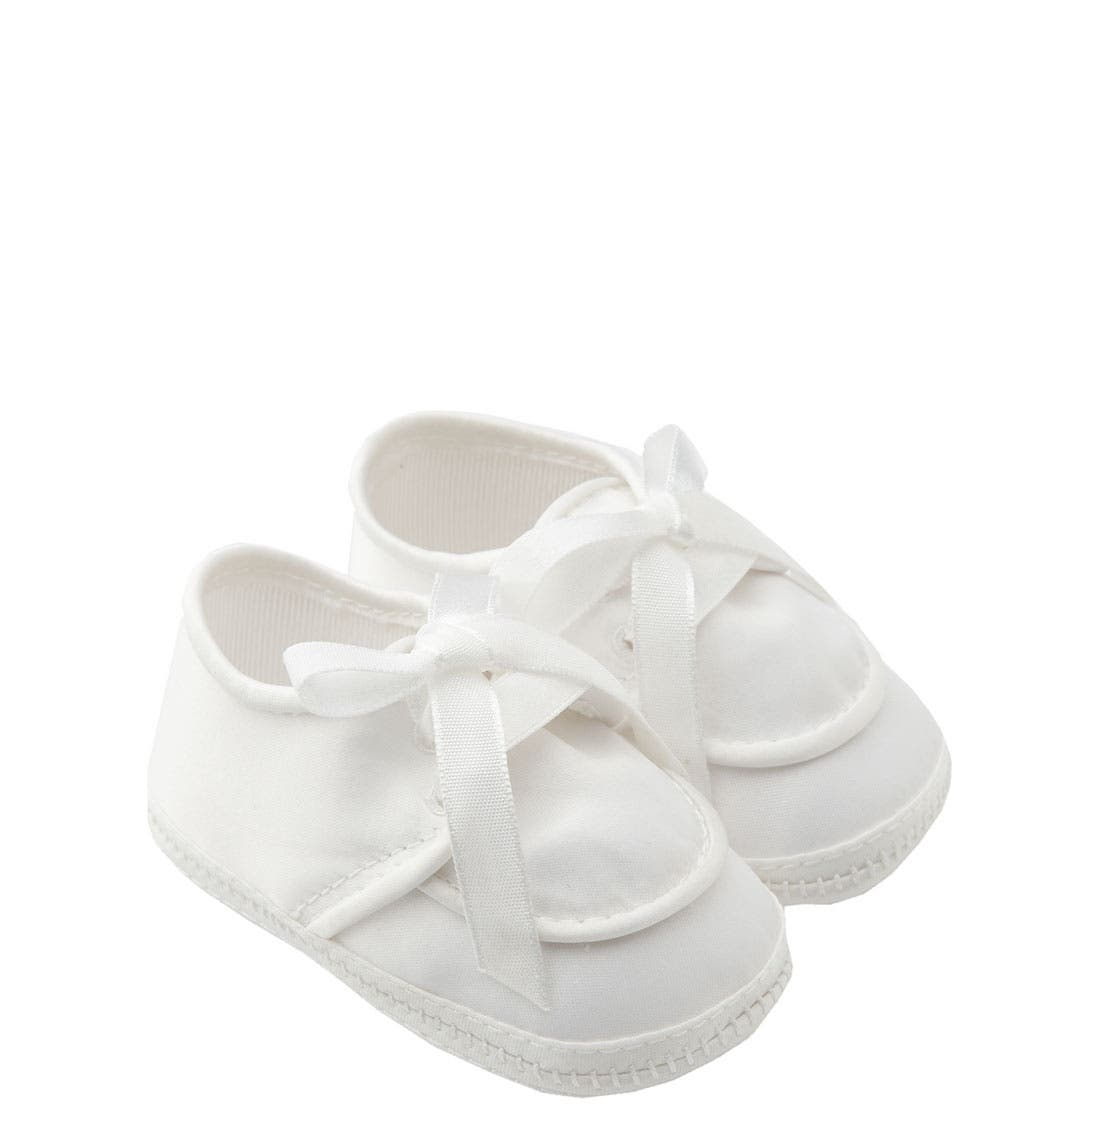 Alternate Image 1 Selected - Designer's Touch 'Michael' Crib Shoe (Baby)